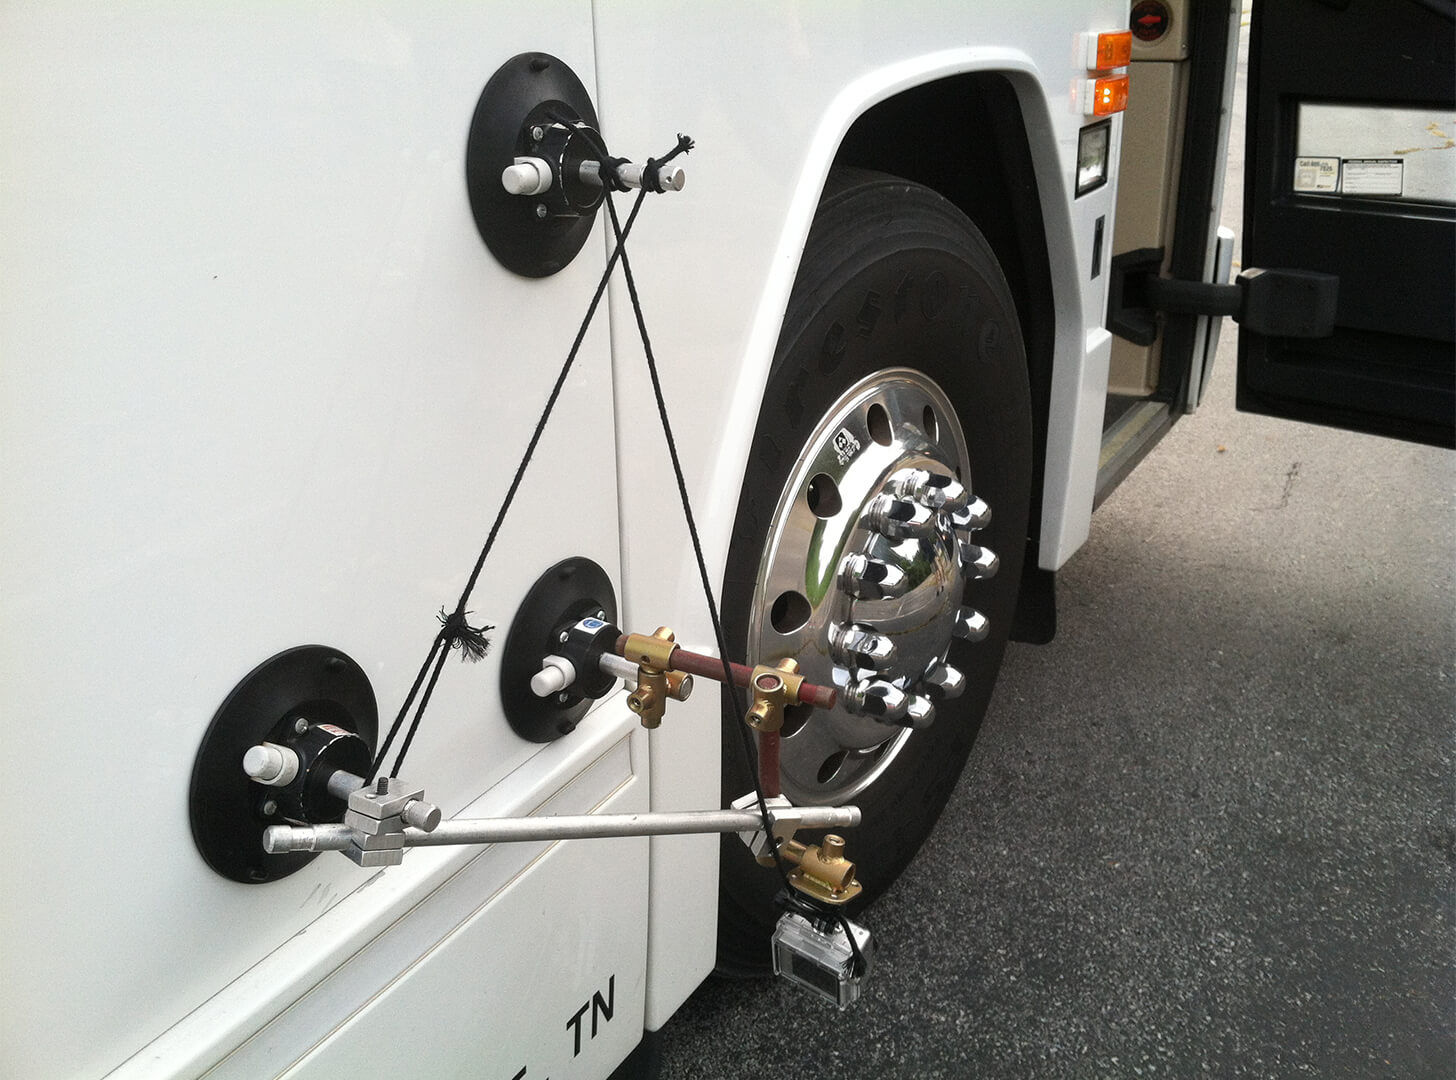 Smoky Mountain Grip and Lighting Co. Rigging